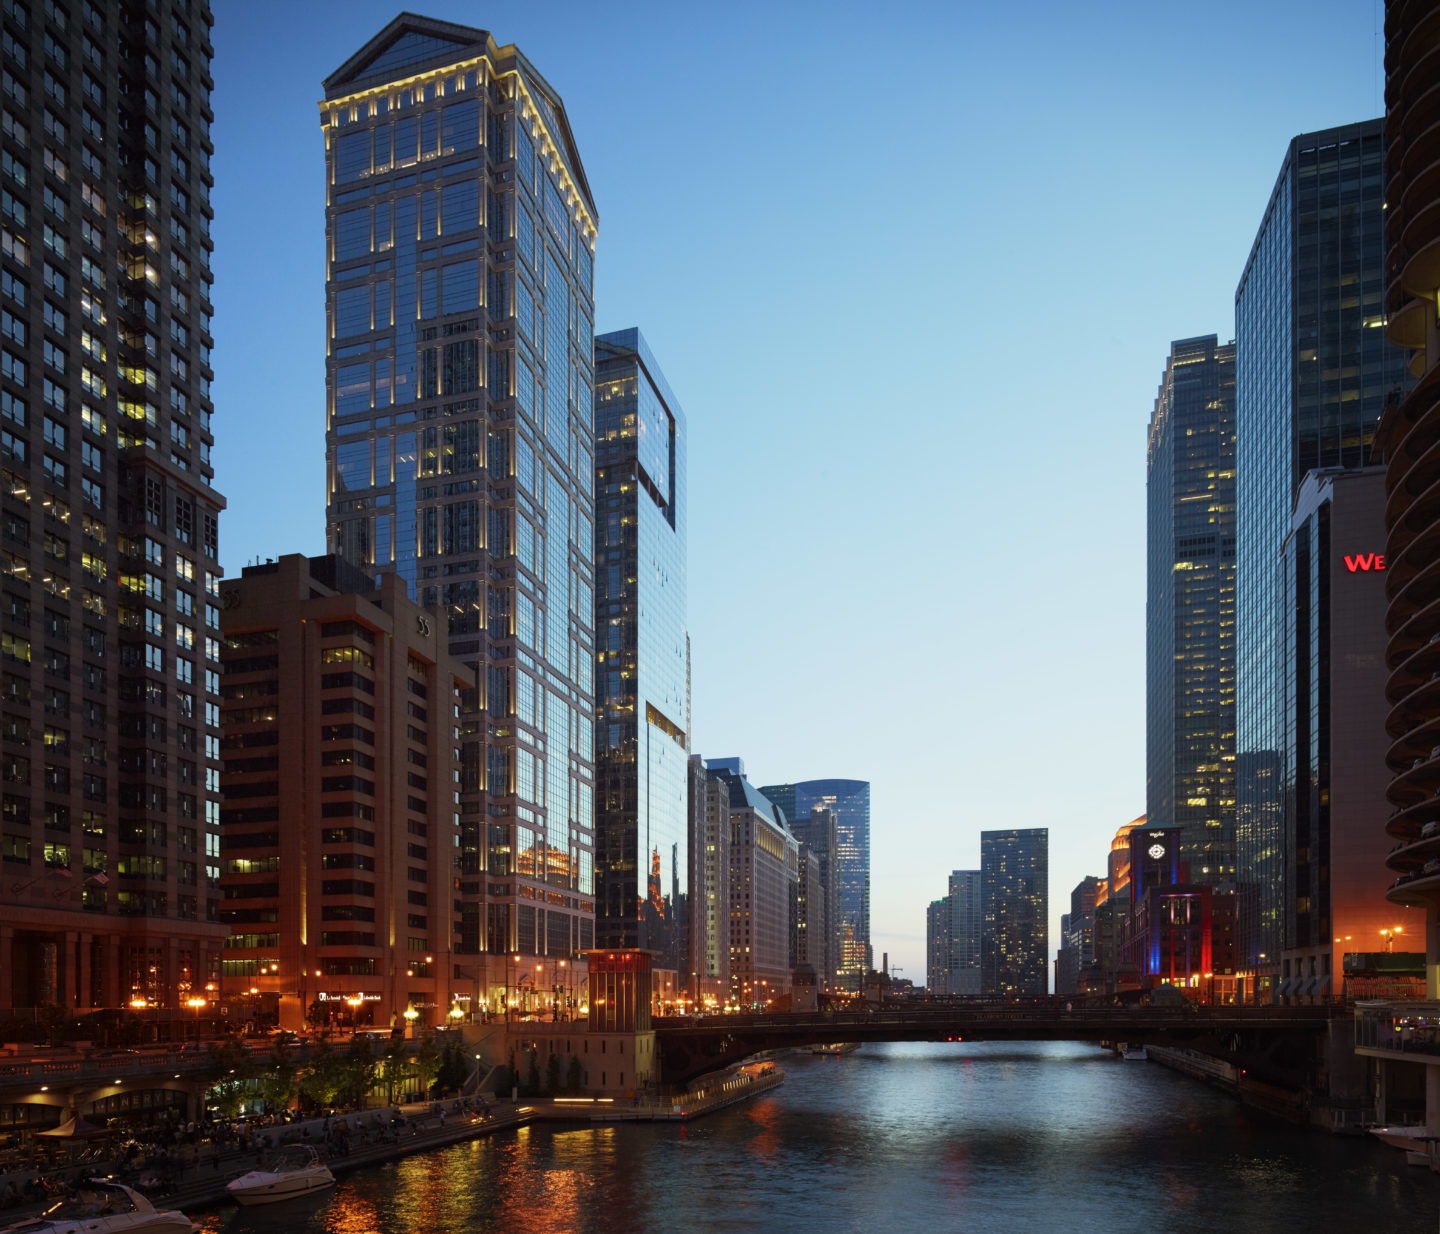 View of the tower - 77 West Wacker Drive